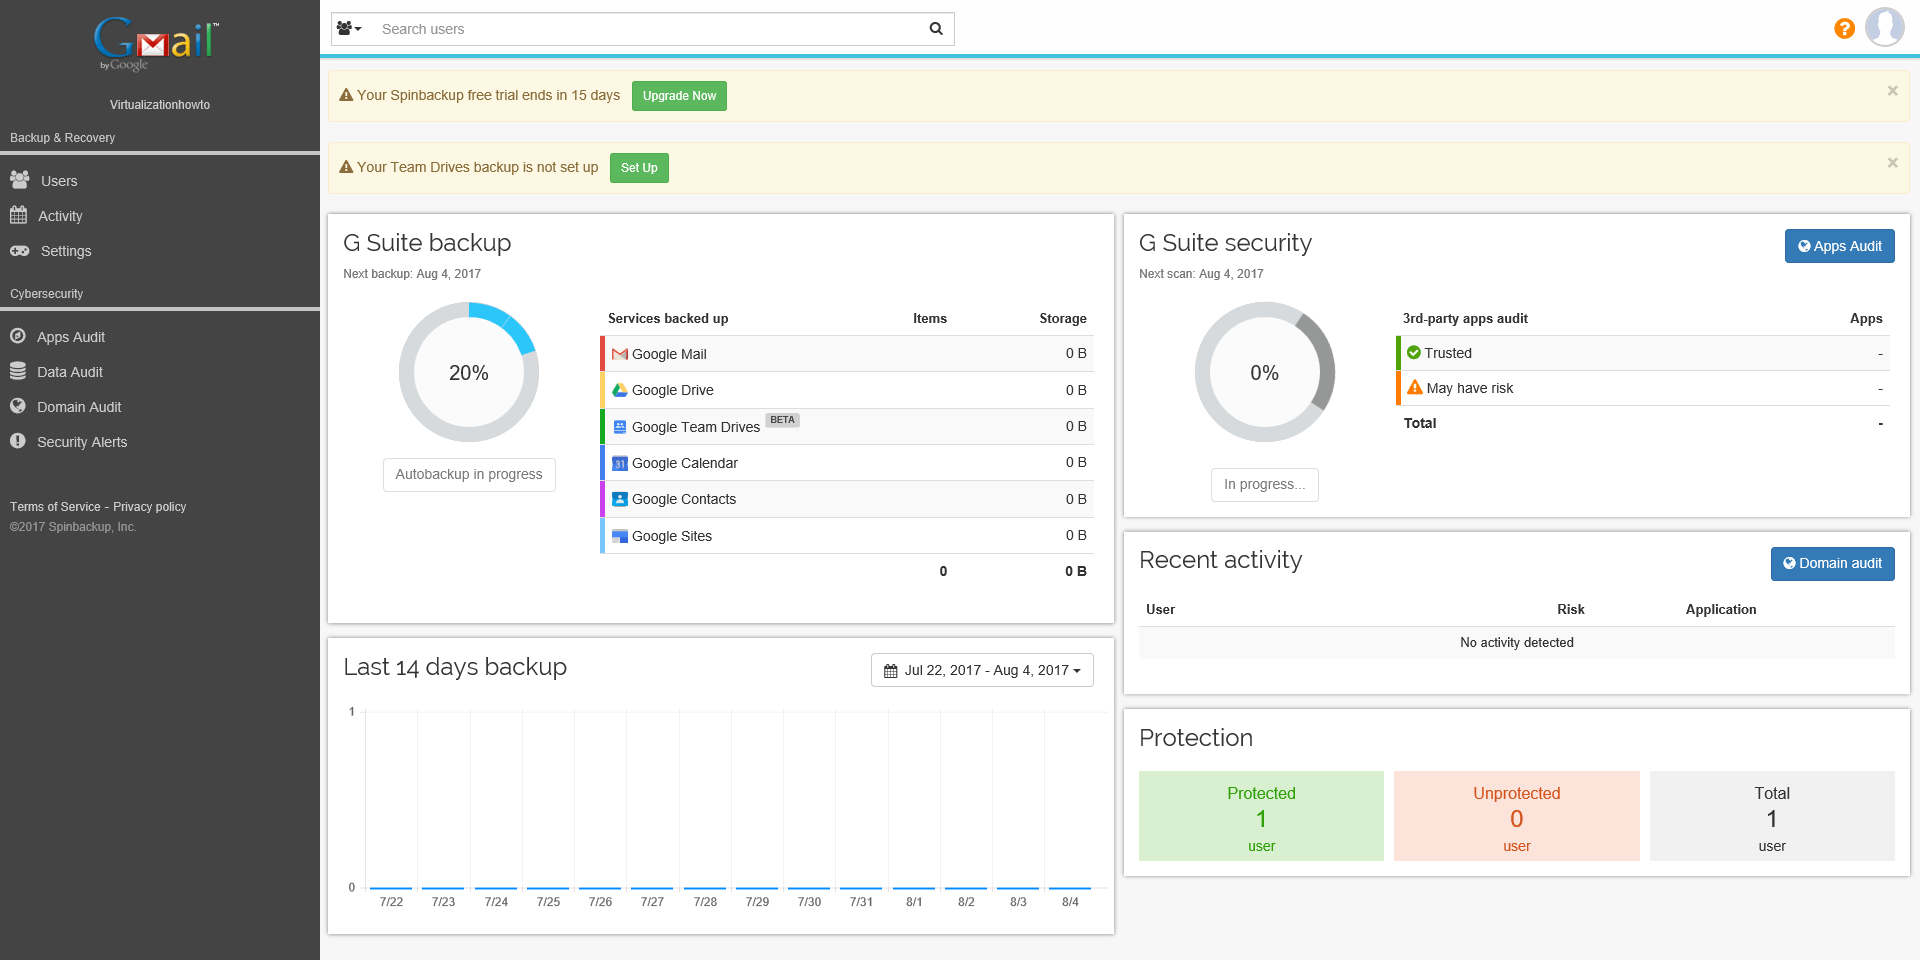 Spinbackup-G-Suite-Backup-and-Security-Dashboard